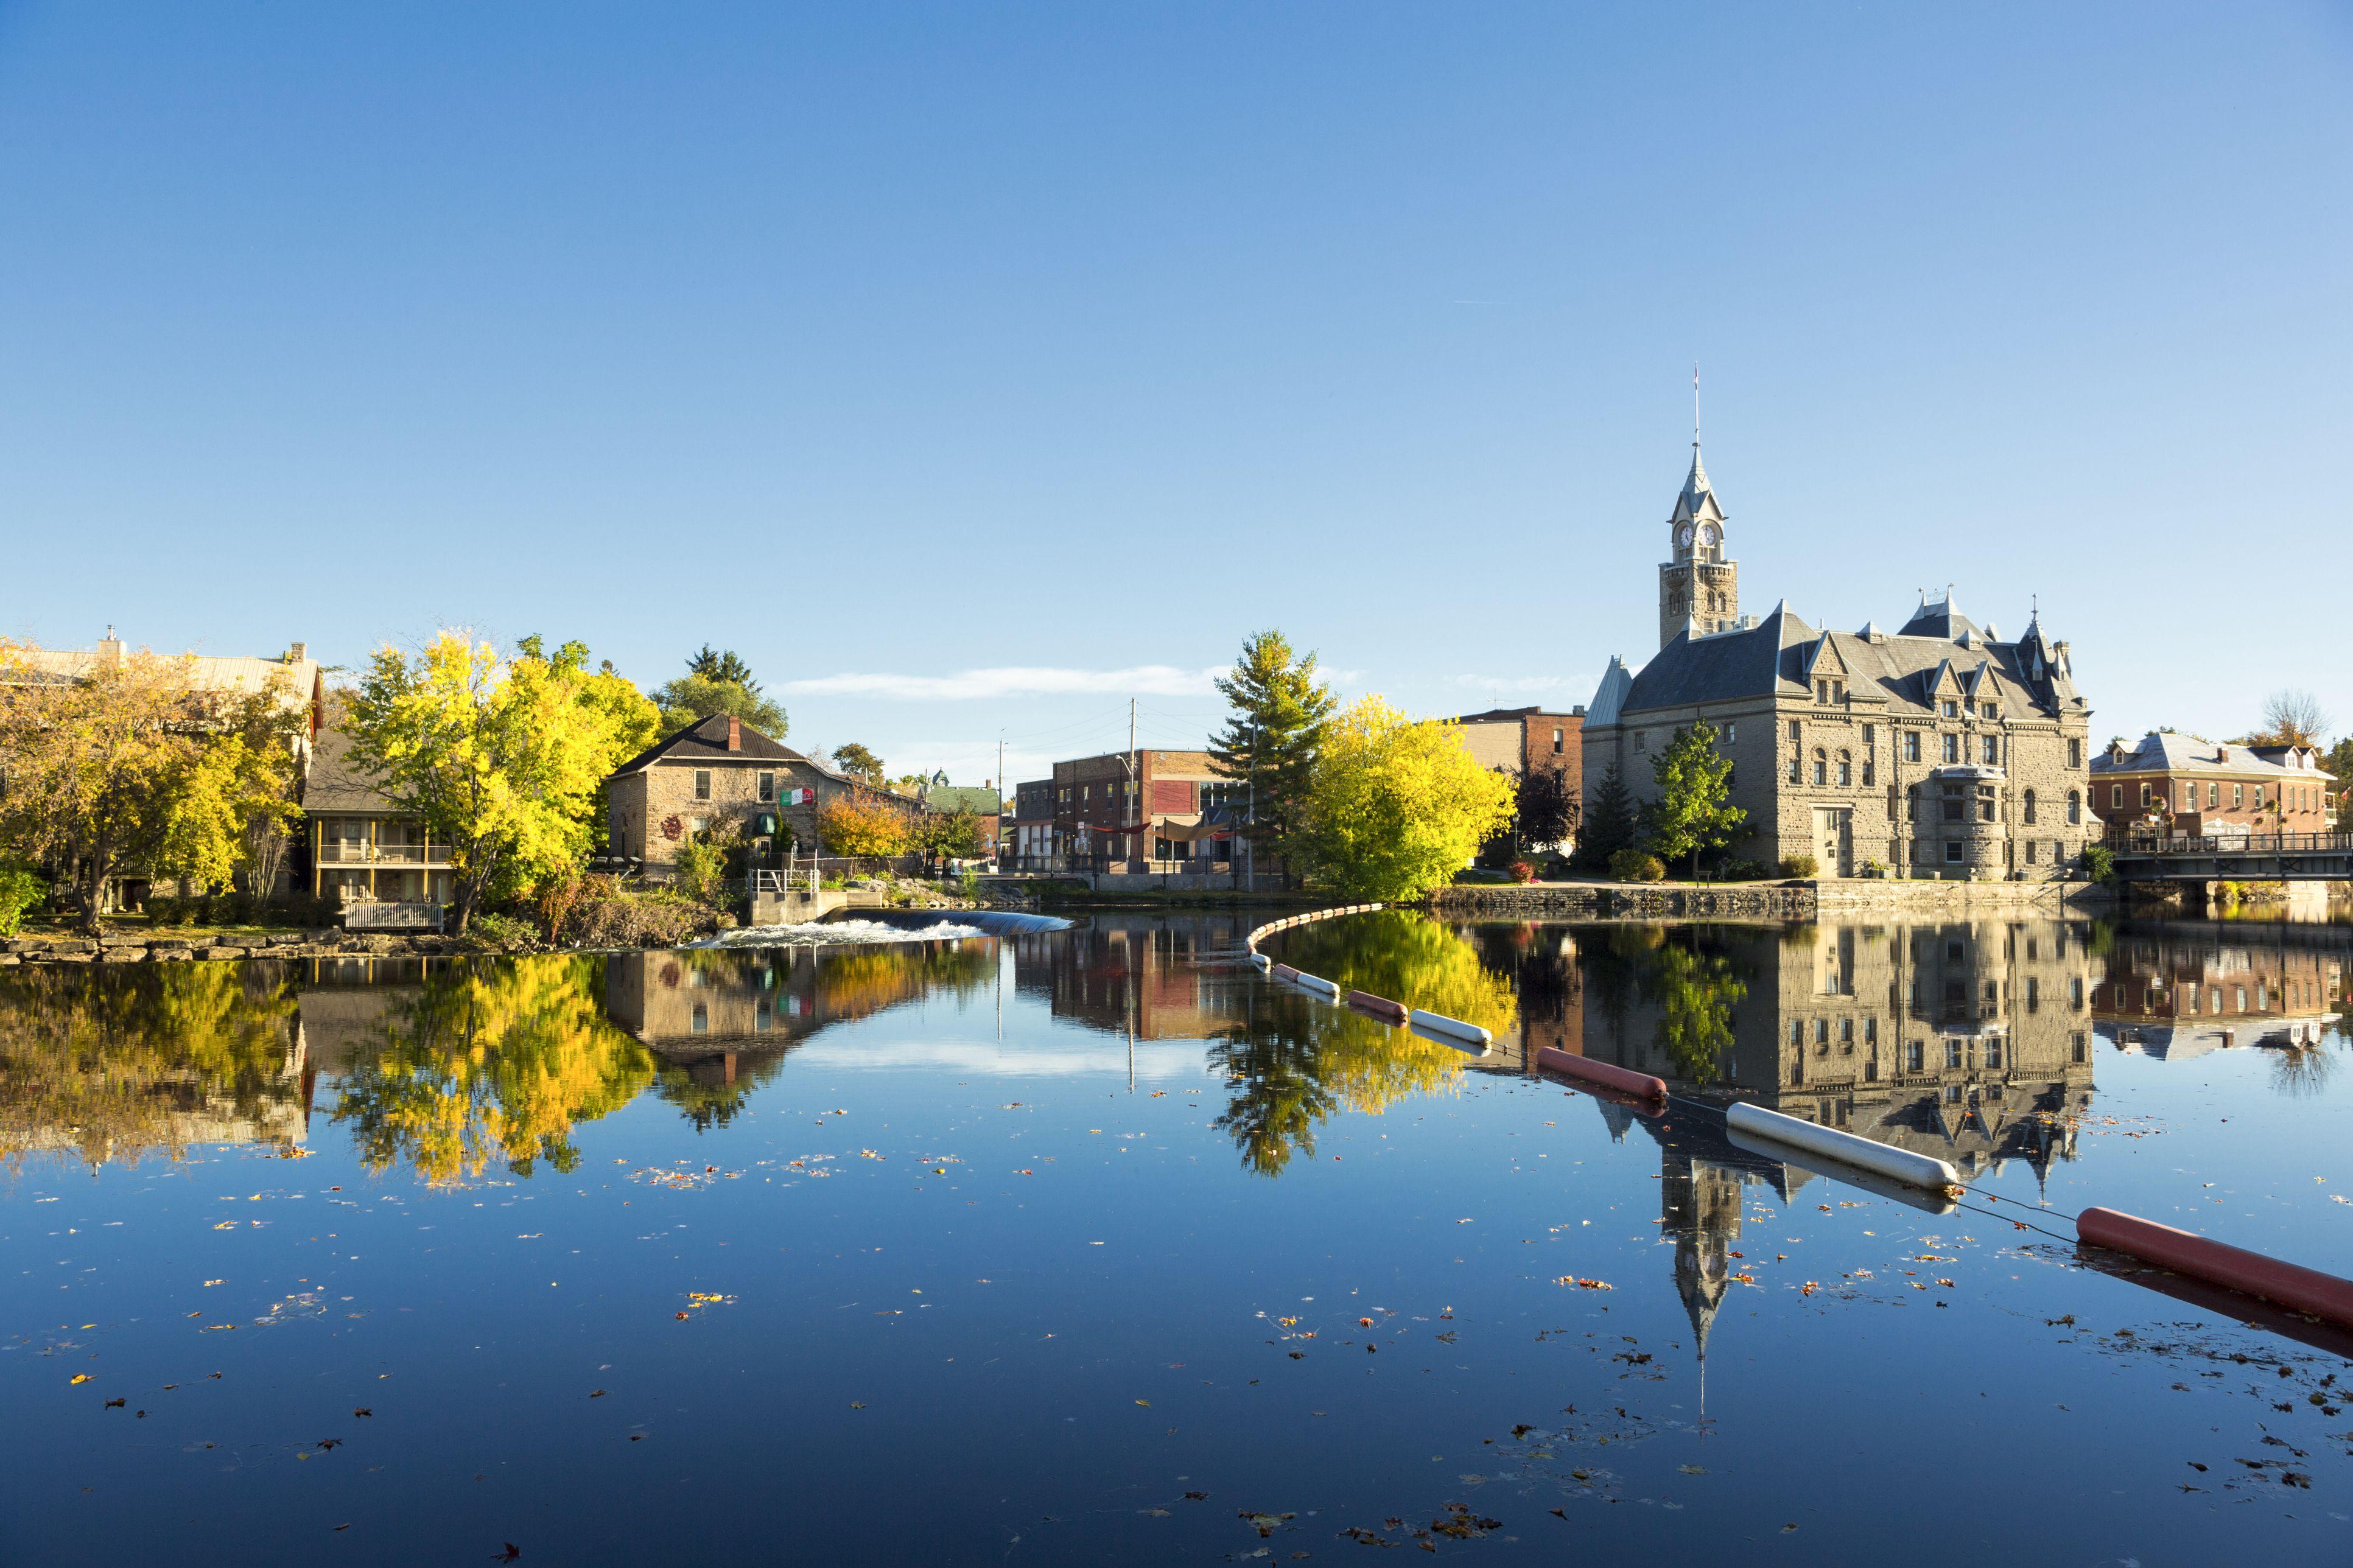 Town of Carleton Place, Ontario, Canada